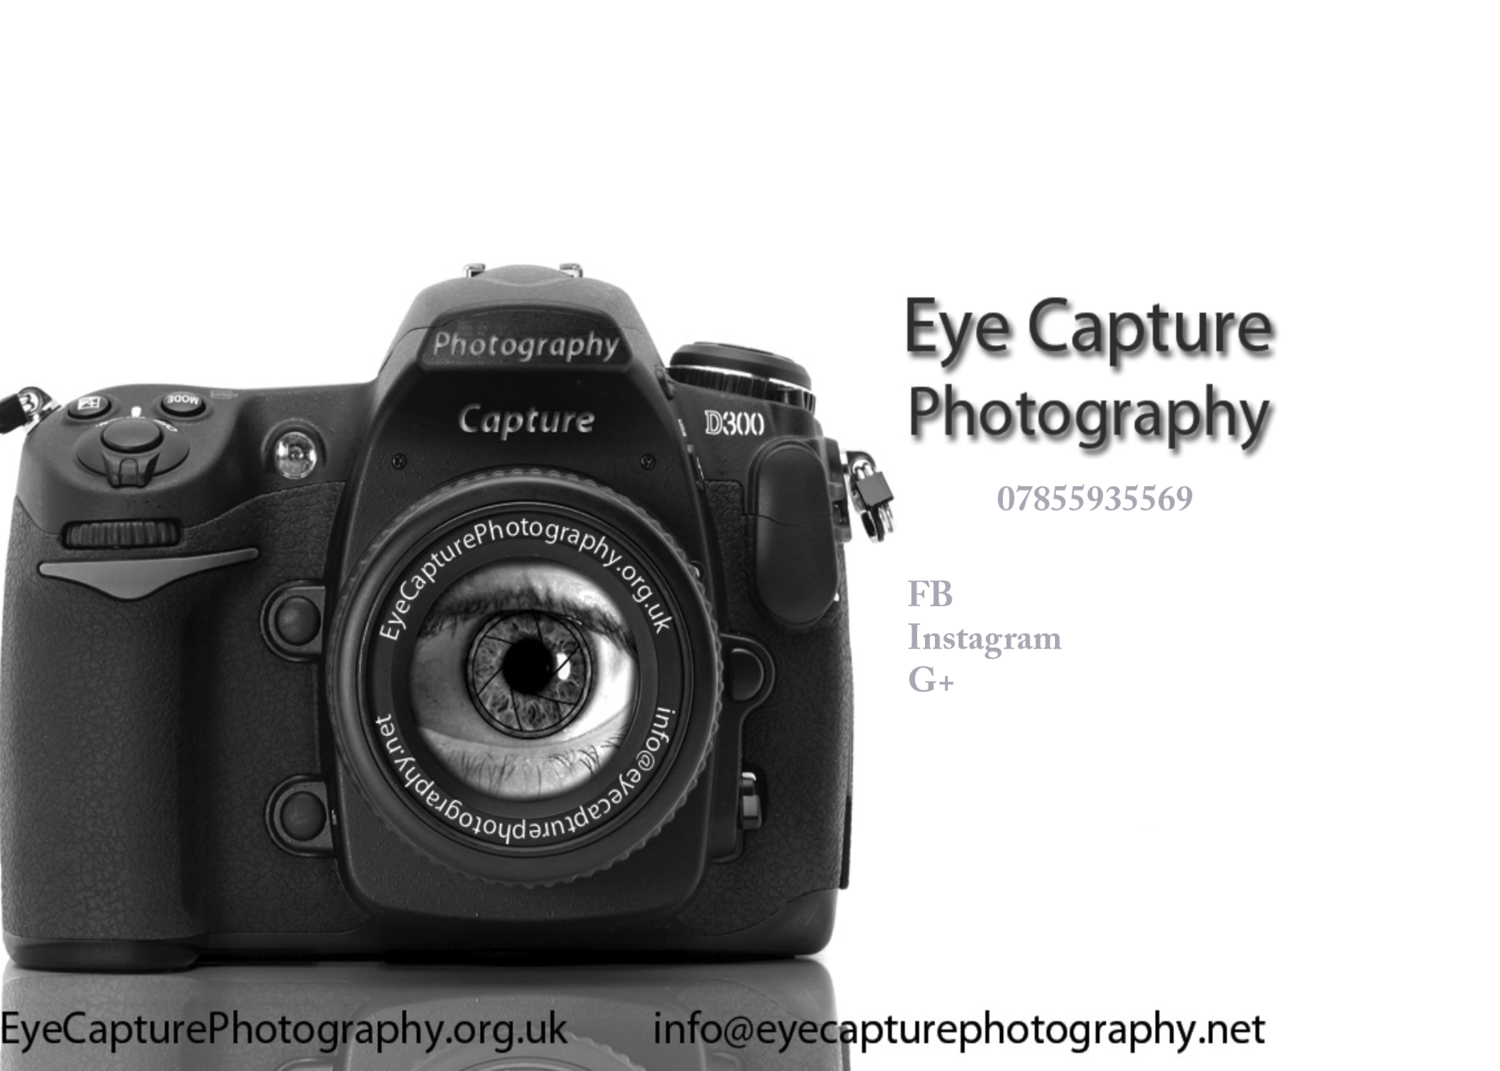 Eyecapturephotography.net